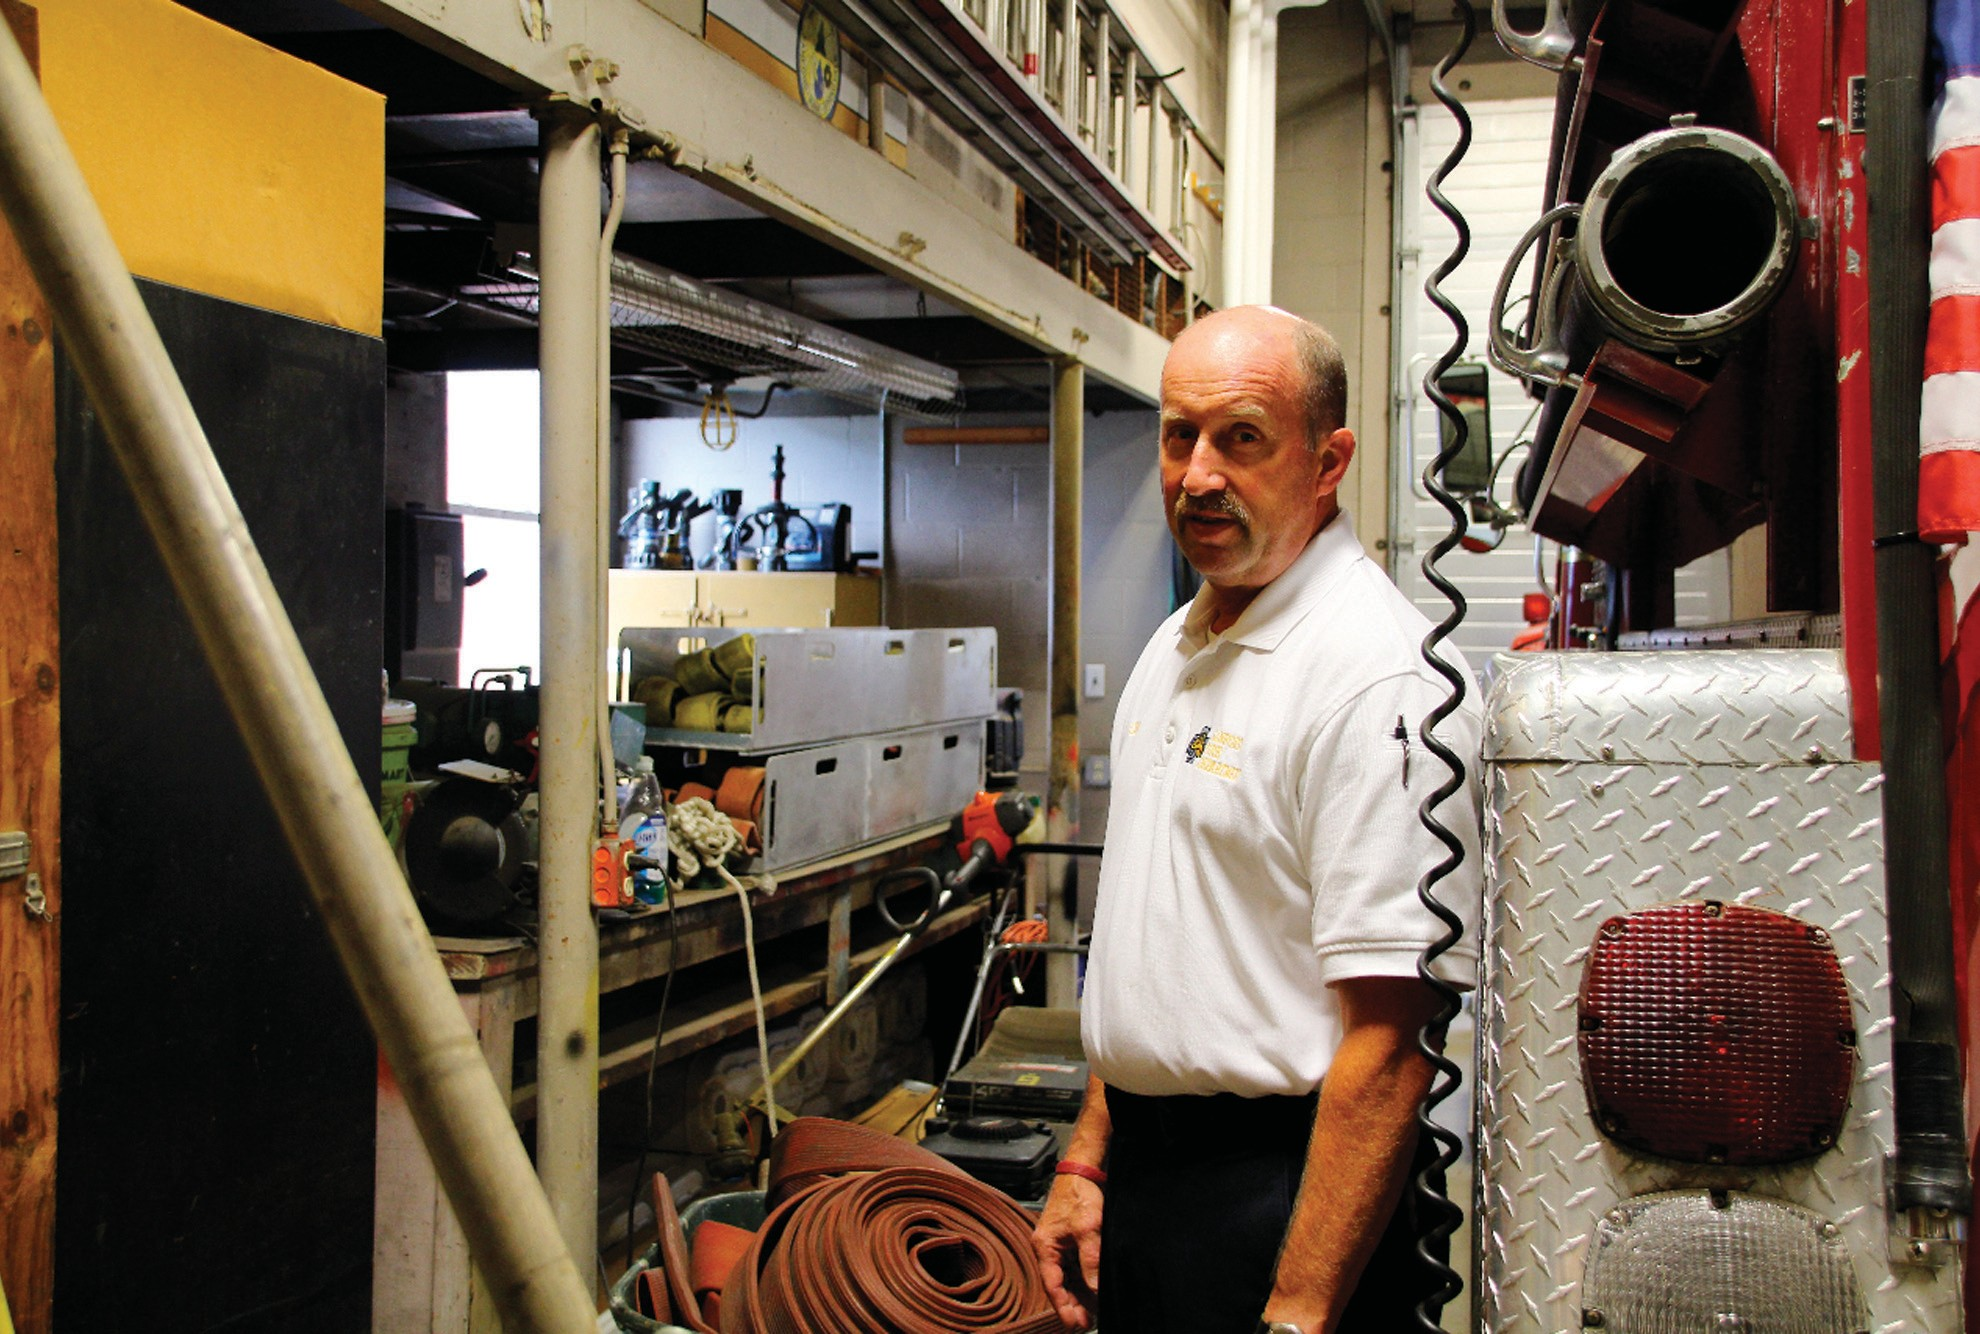 Sanford Fire Chief Steve Benotti stands inside the maintenance bay at Central Station. Because of lack of space, a forestry truck is housed there. Scarce space and a host of other issues have prompted the city to conduct a department-wide assessment of stations, apparatus and more.